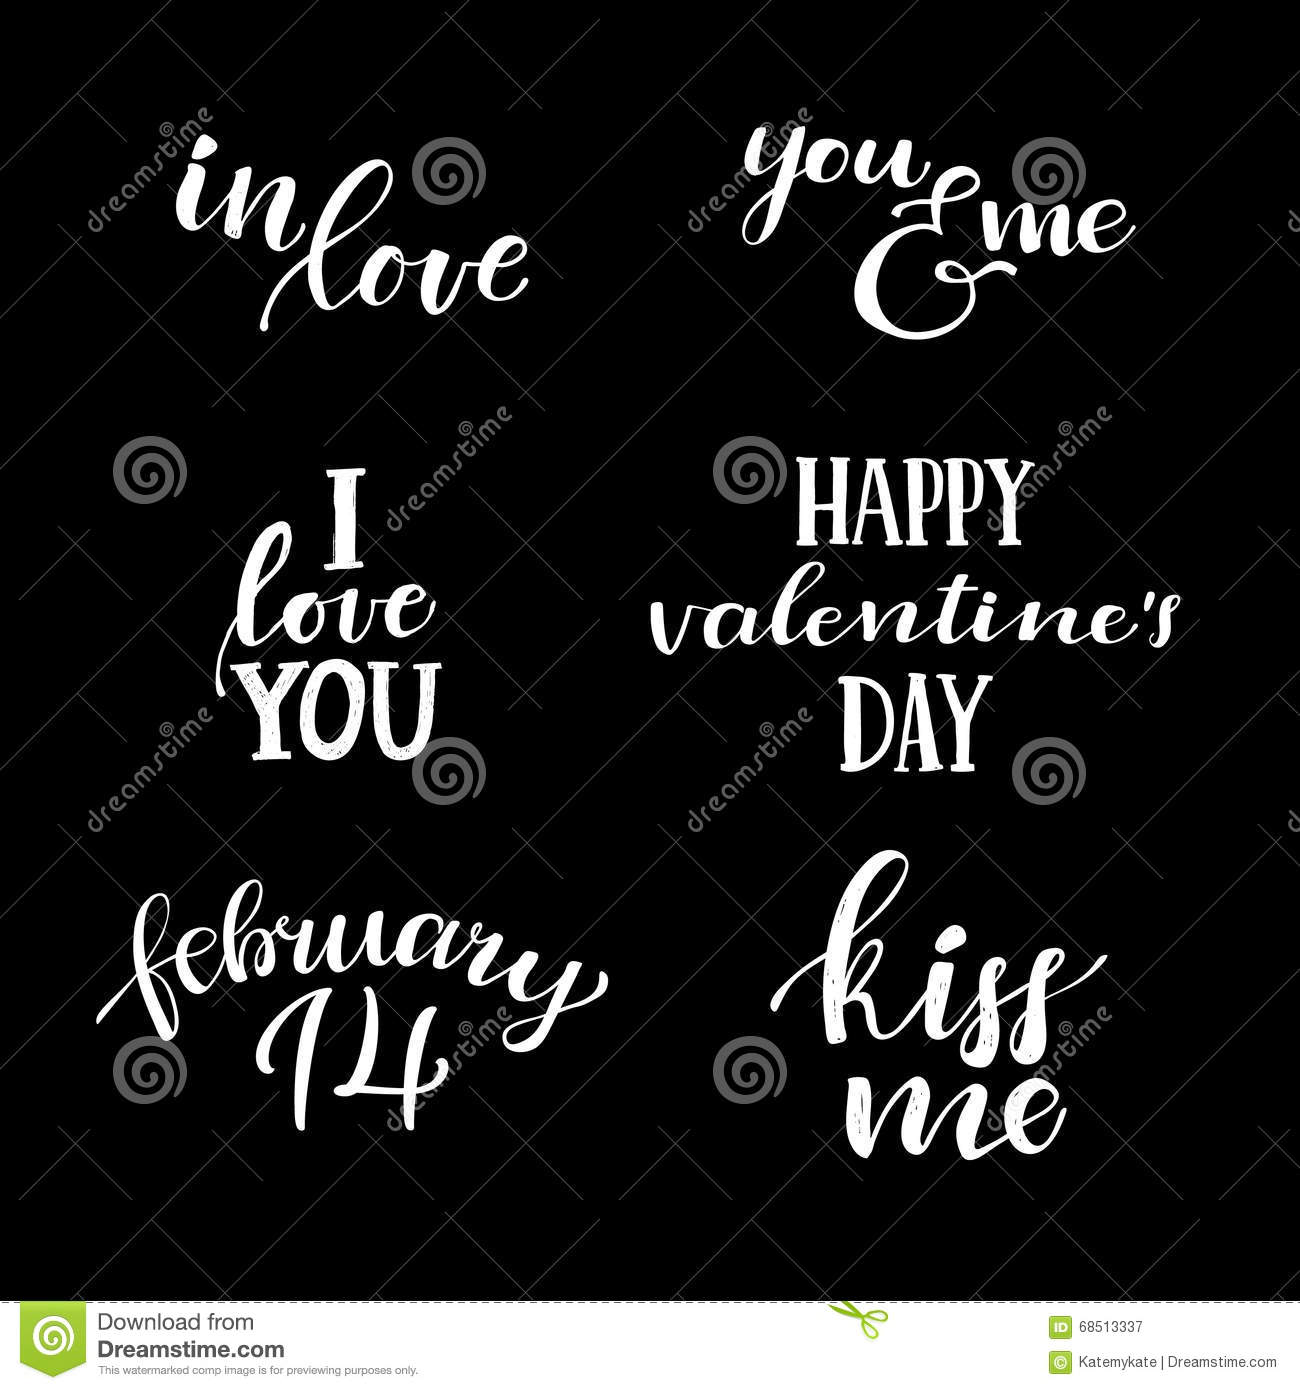 Royalty Free Vector Download I Love You